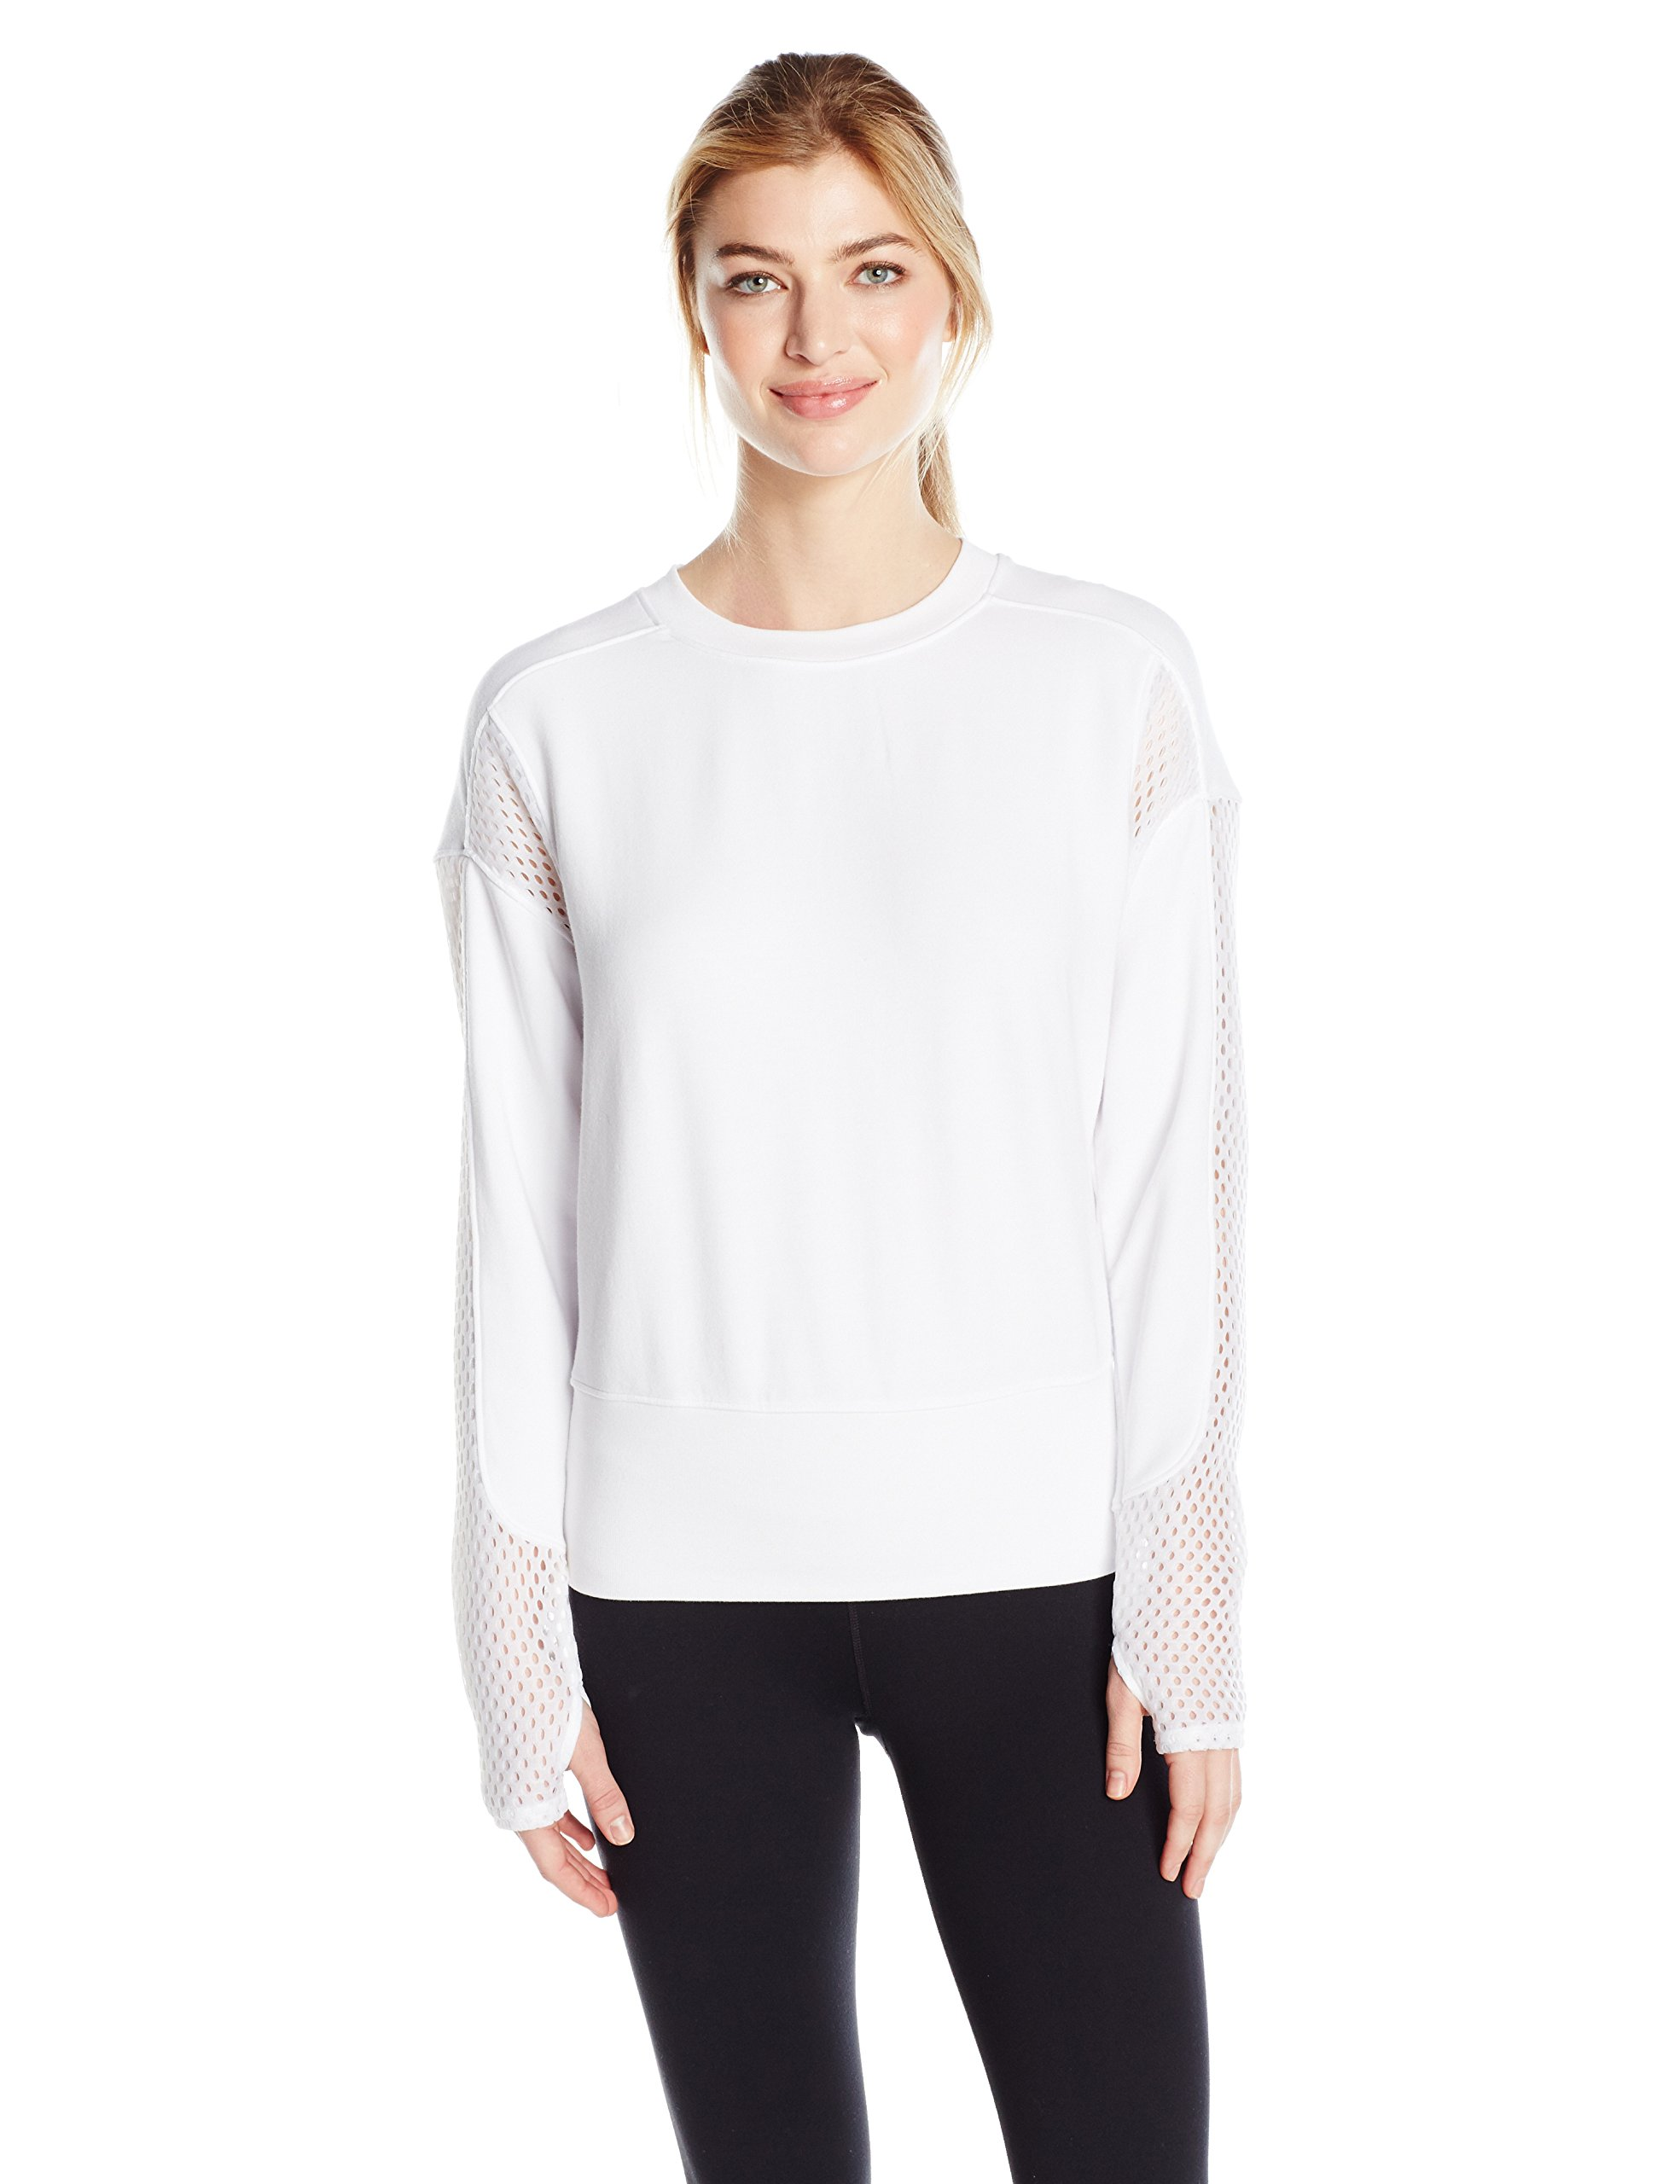 Alo Yoga Women's Formation Long Sleeve Top, White, M